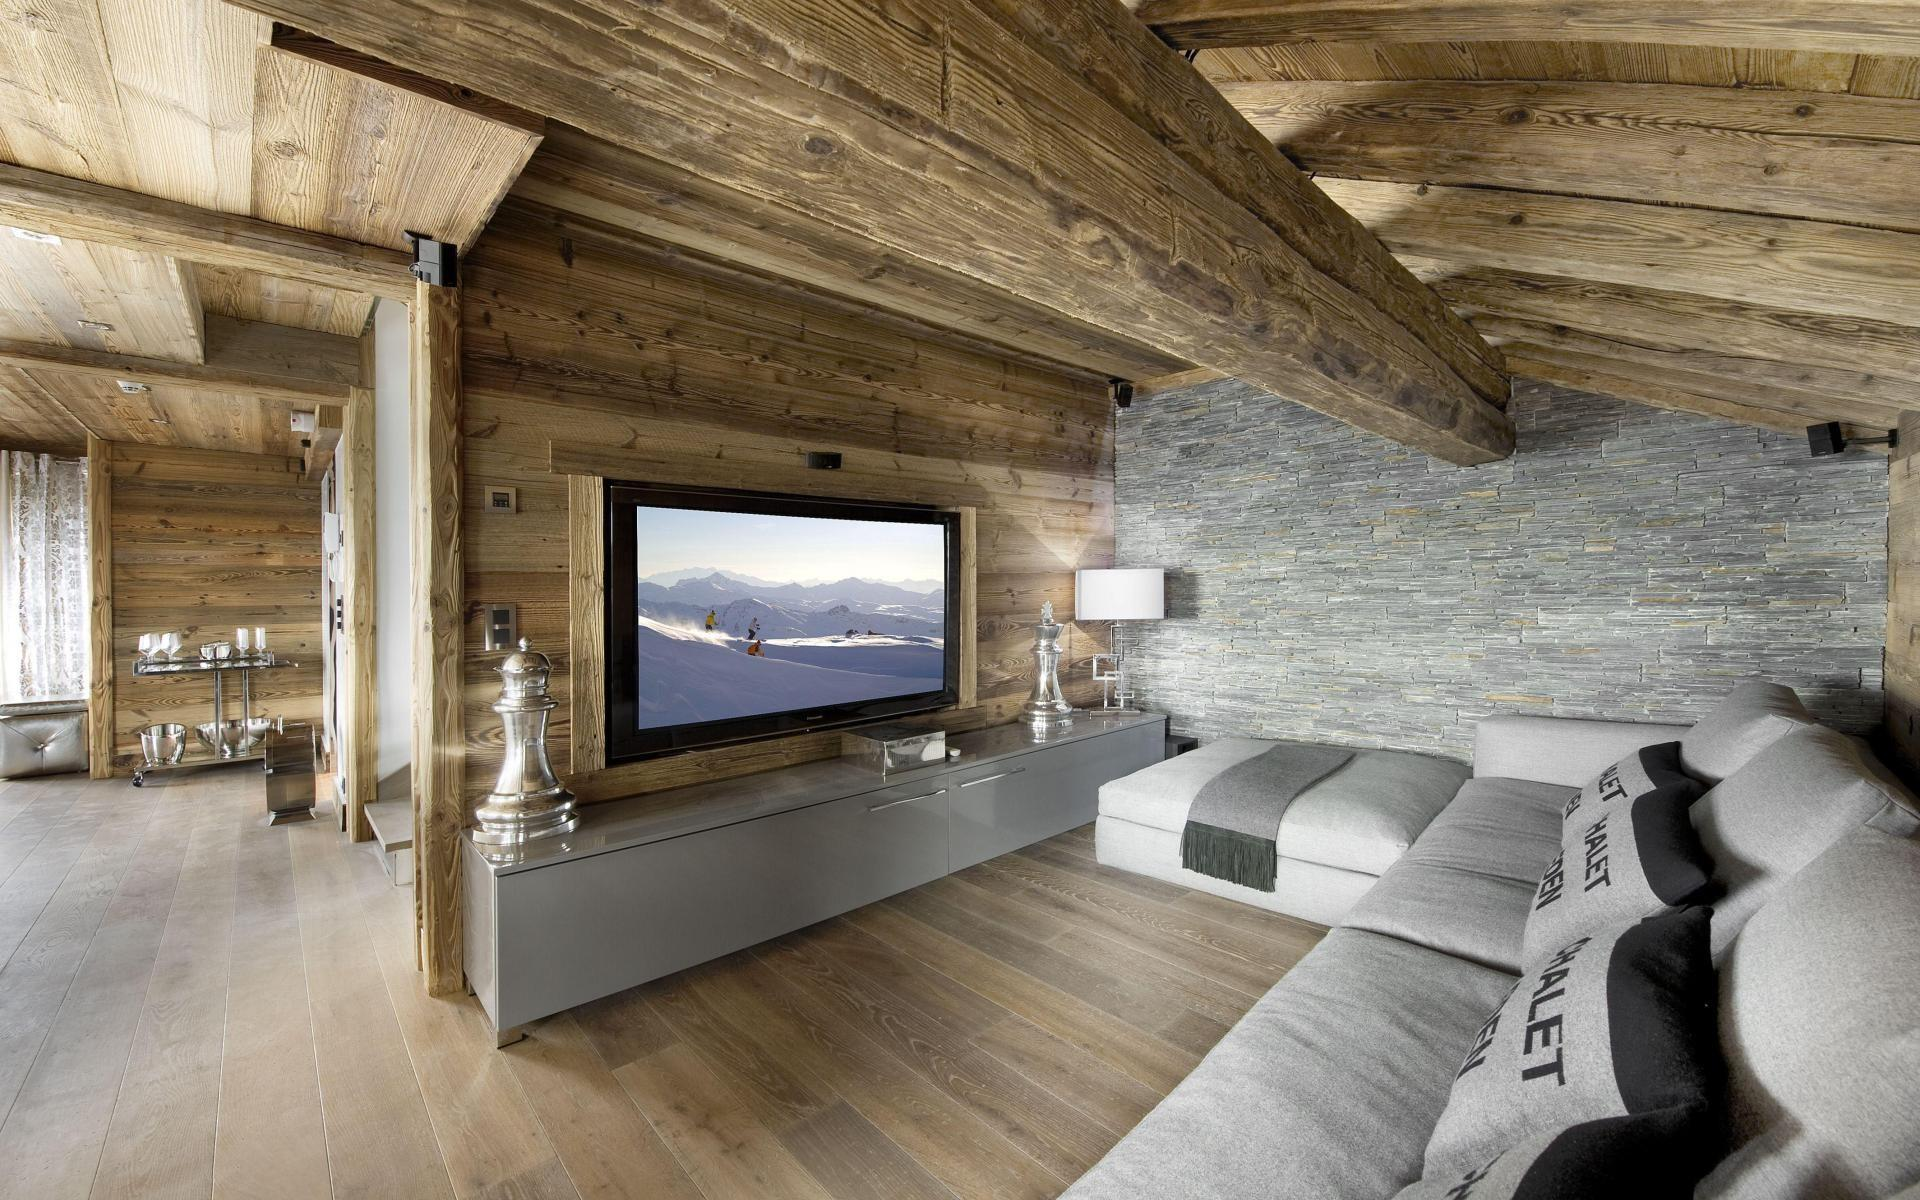 Luxury Ski Chalet Eden Courchevel 1850 France